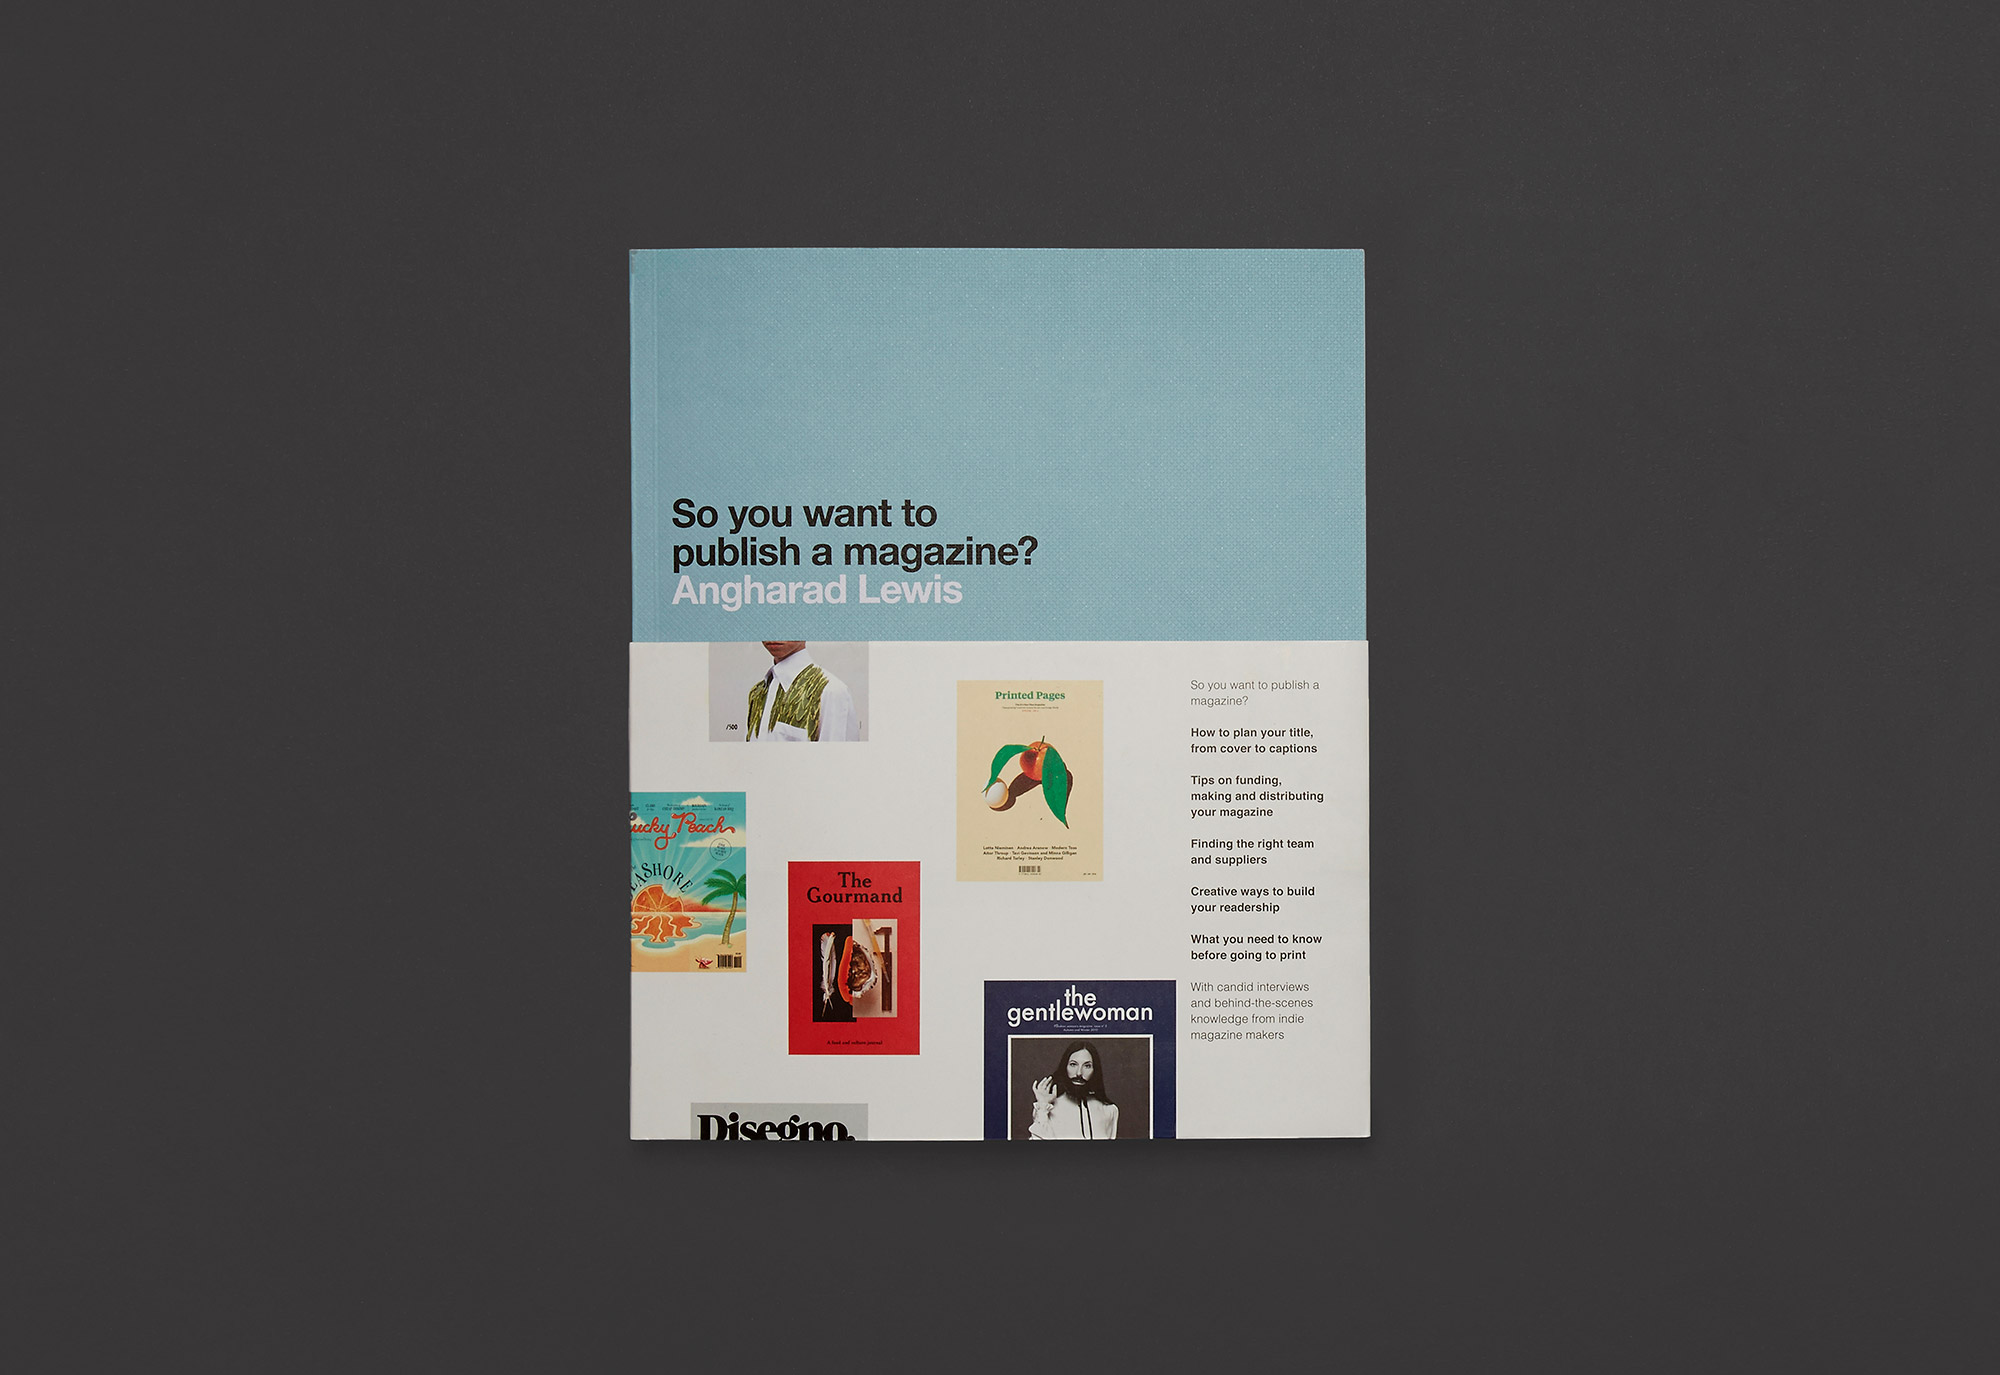 So you want to publish a magazine? designed by She Was Only